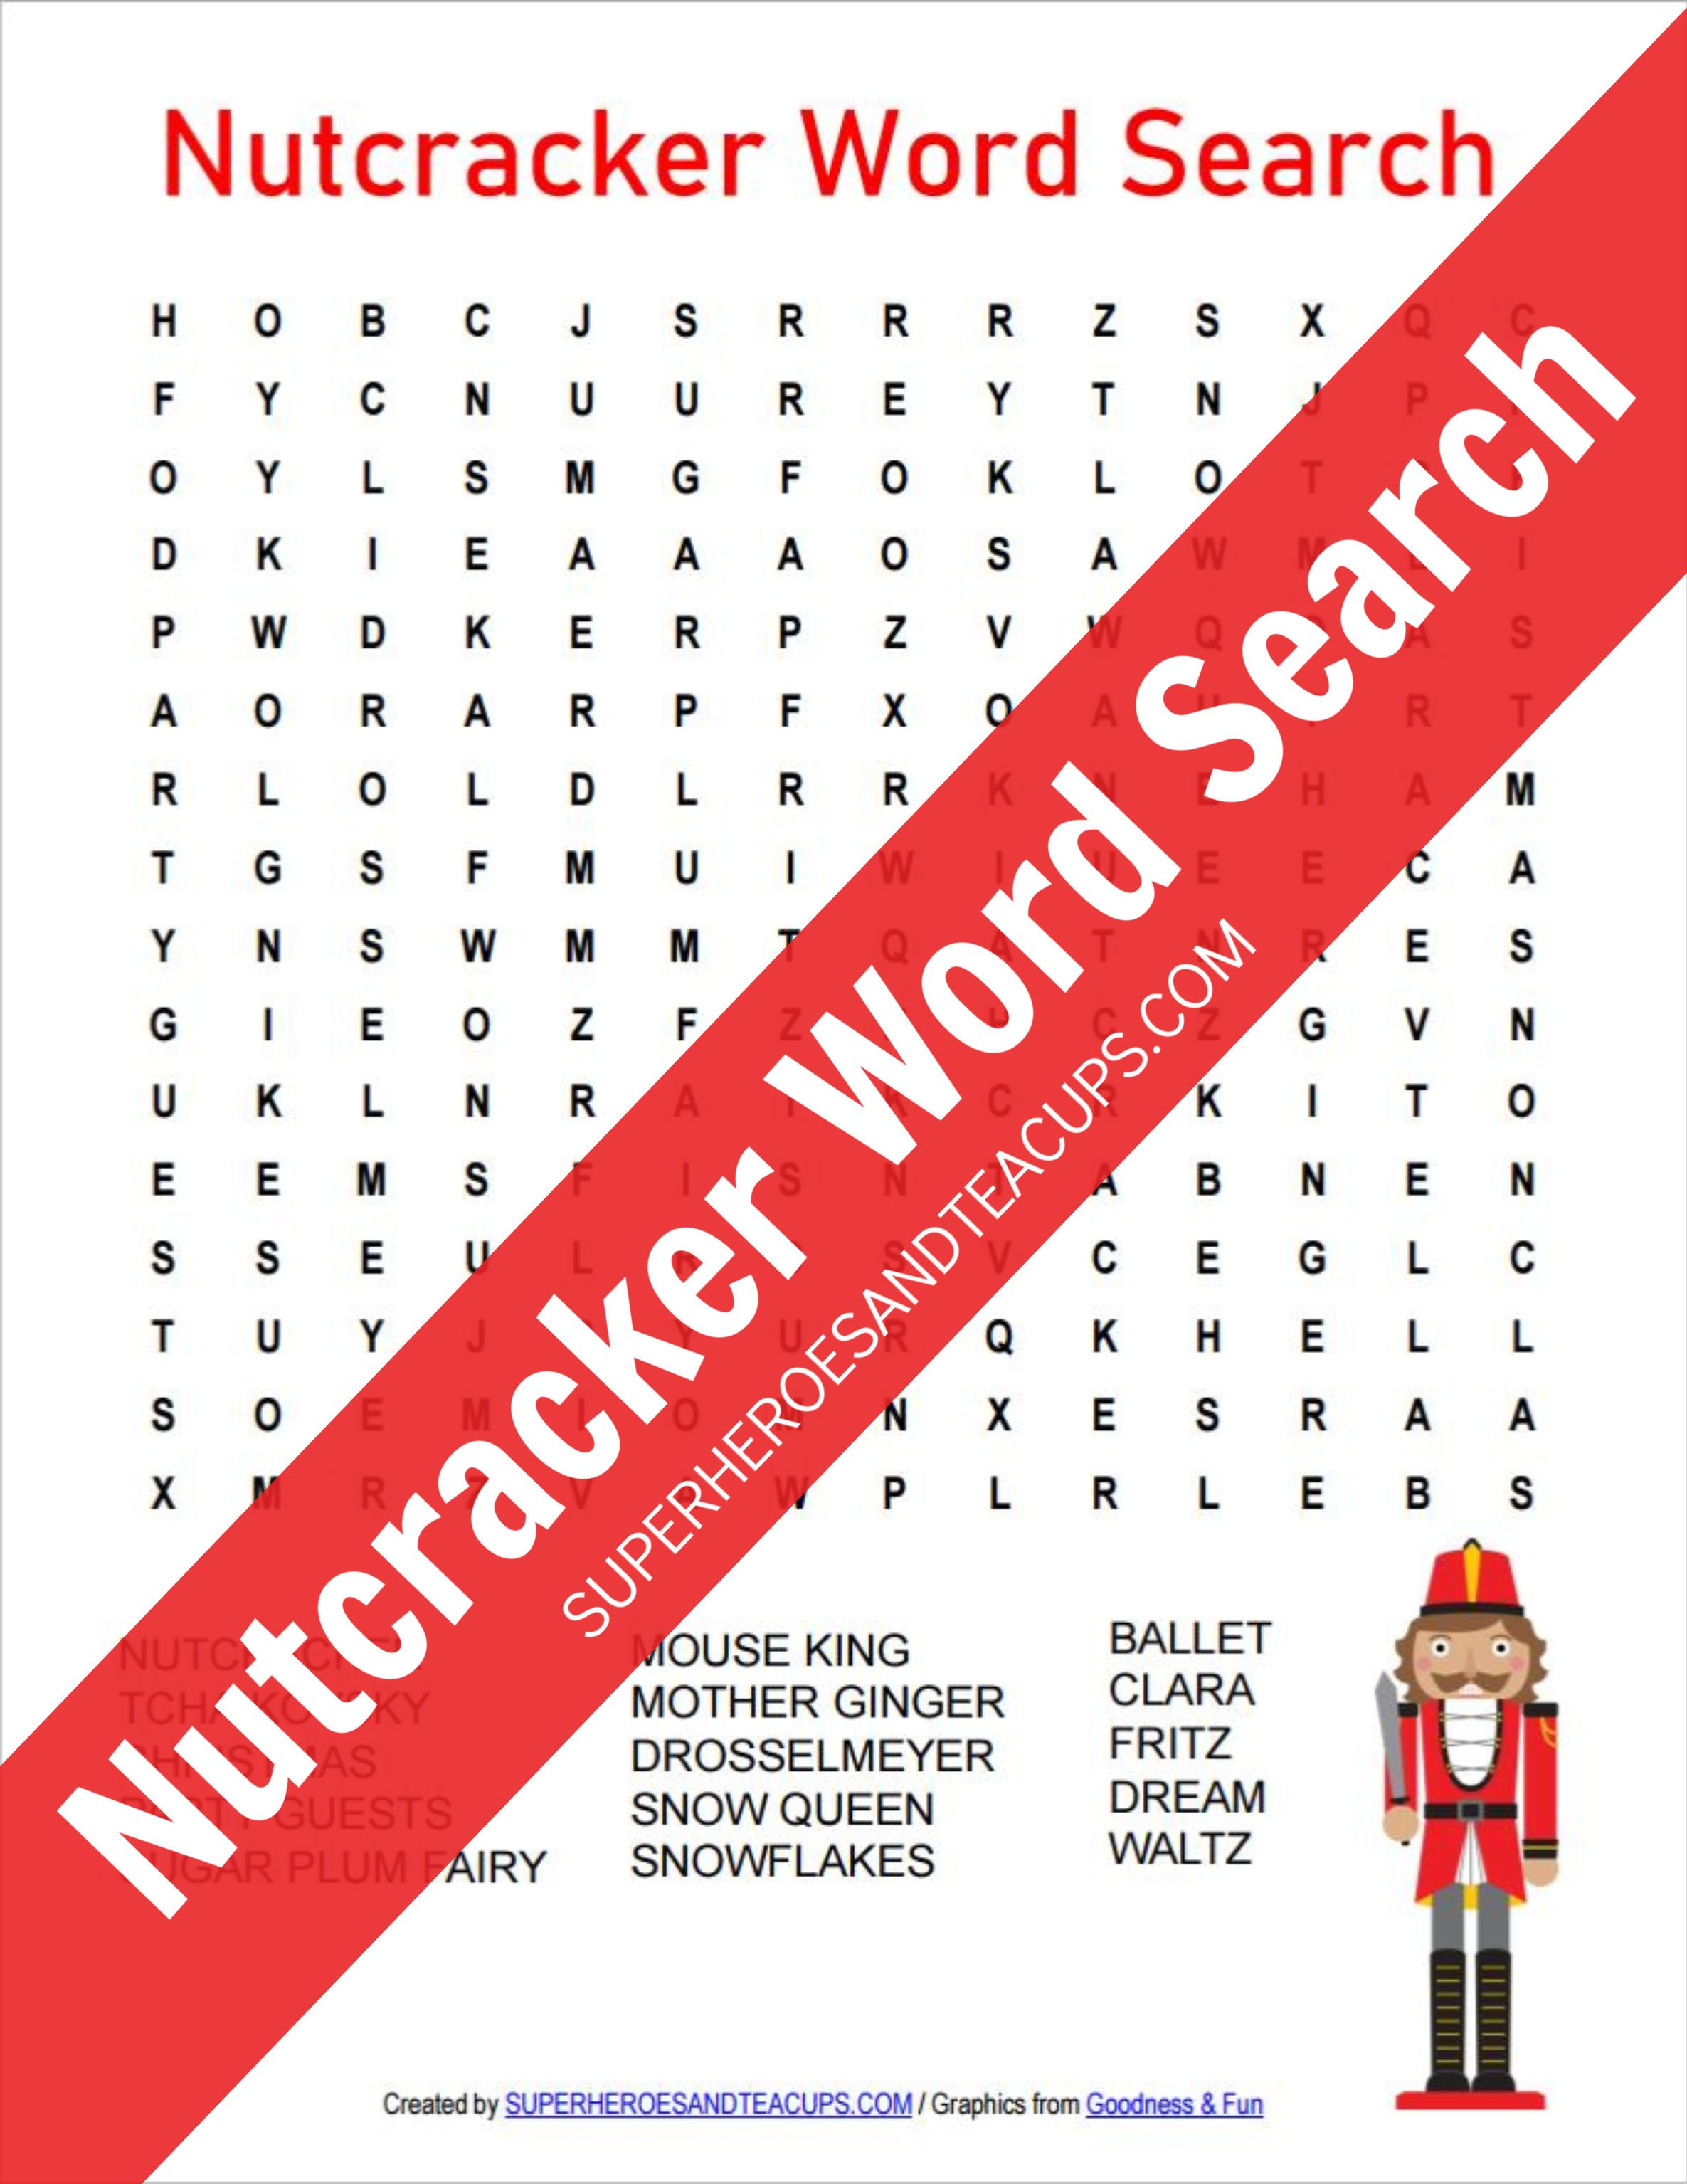 Nutcracker Word Search Free Printable